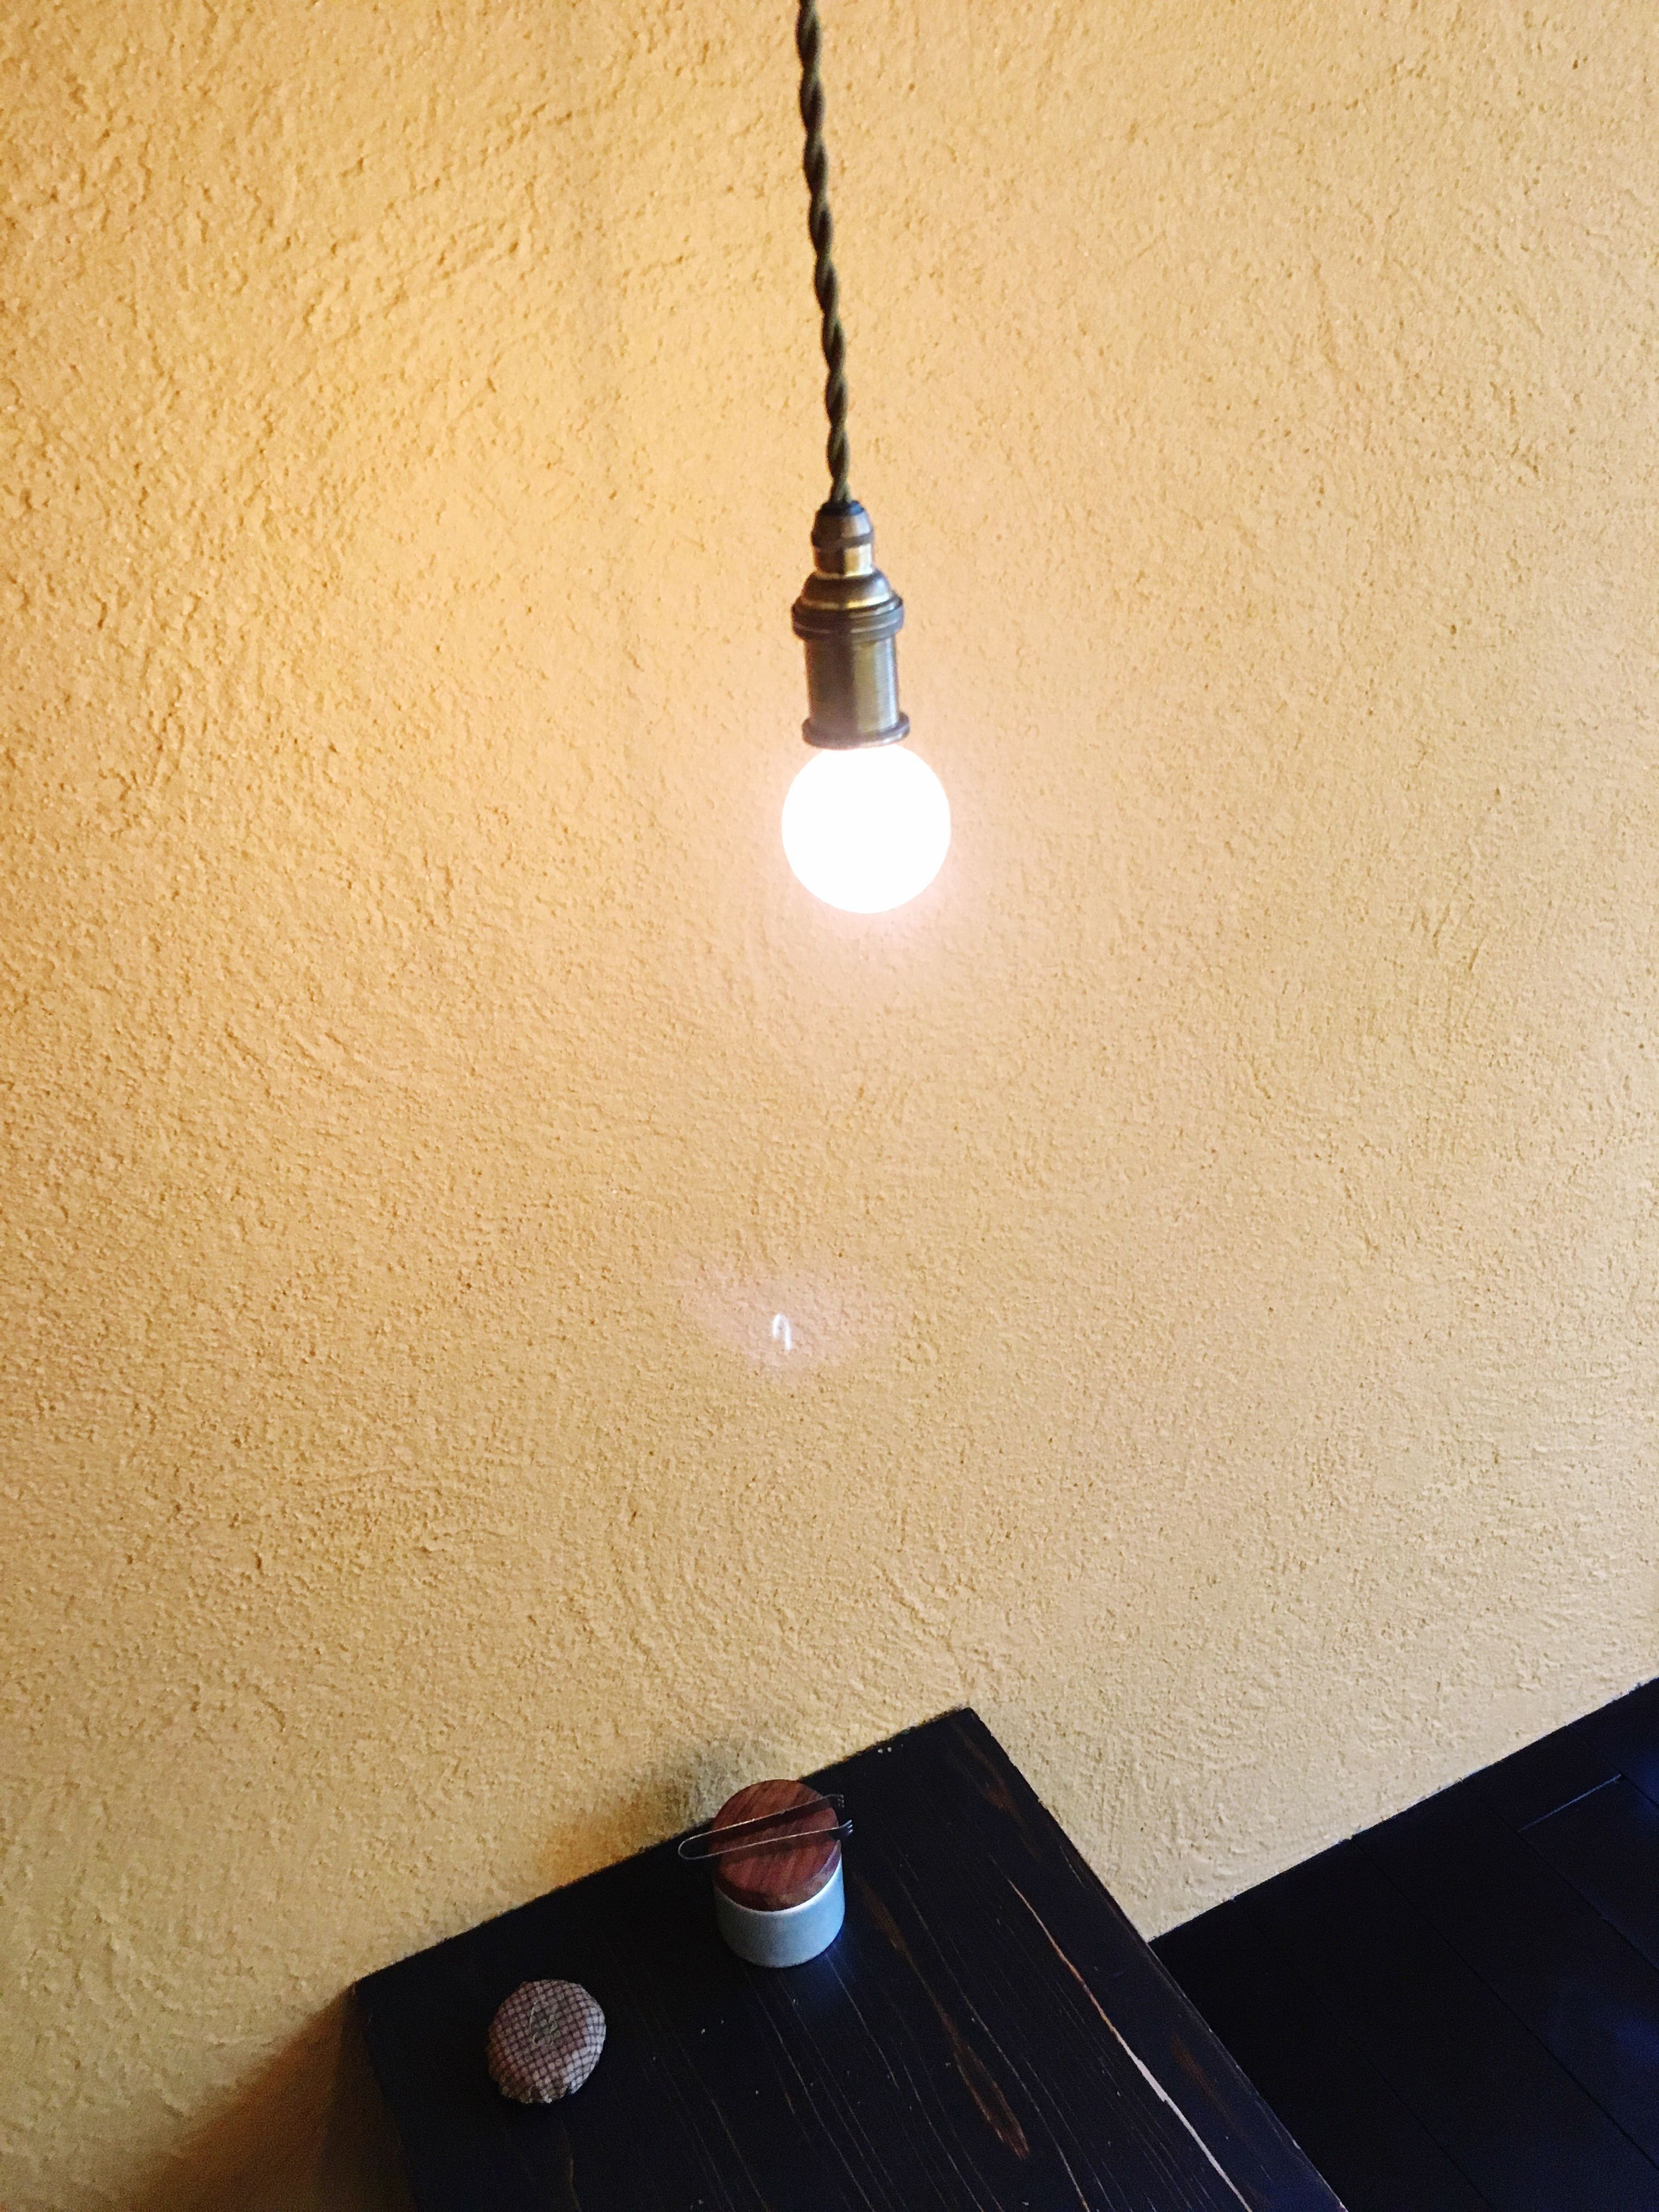 hanging, light bulb, electricity, water, no people, architecture, outdoors, day